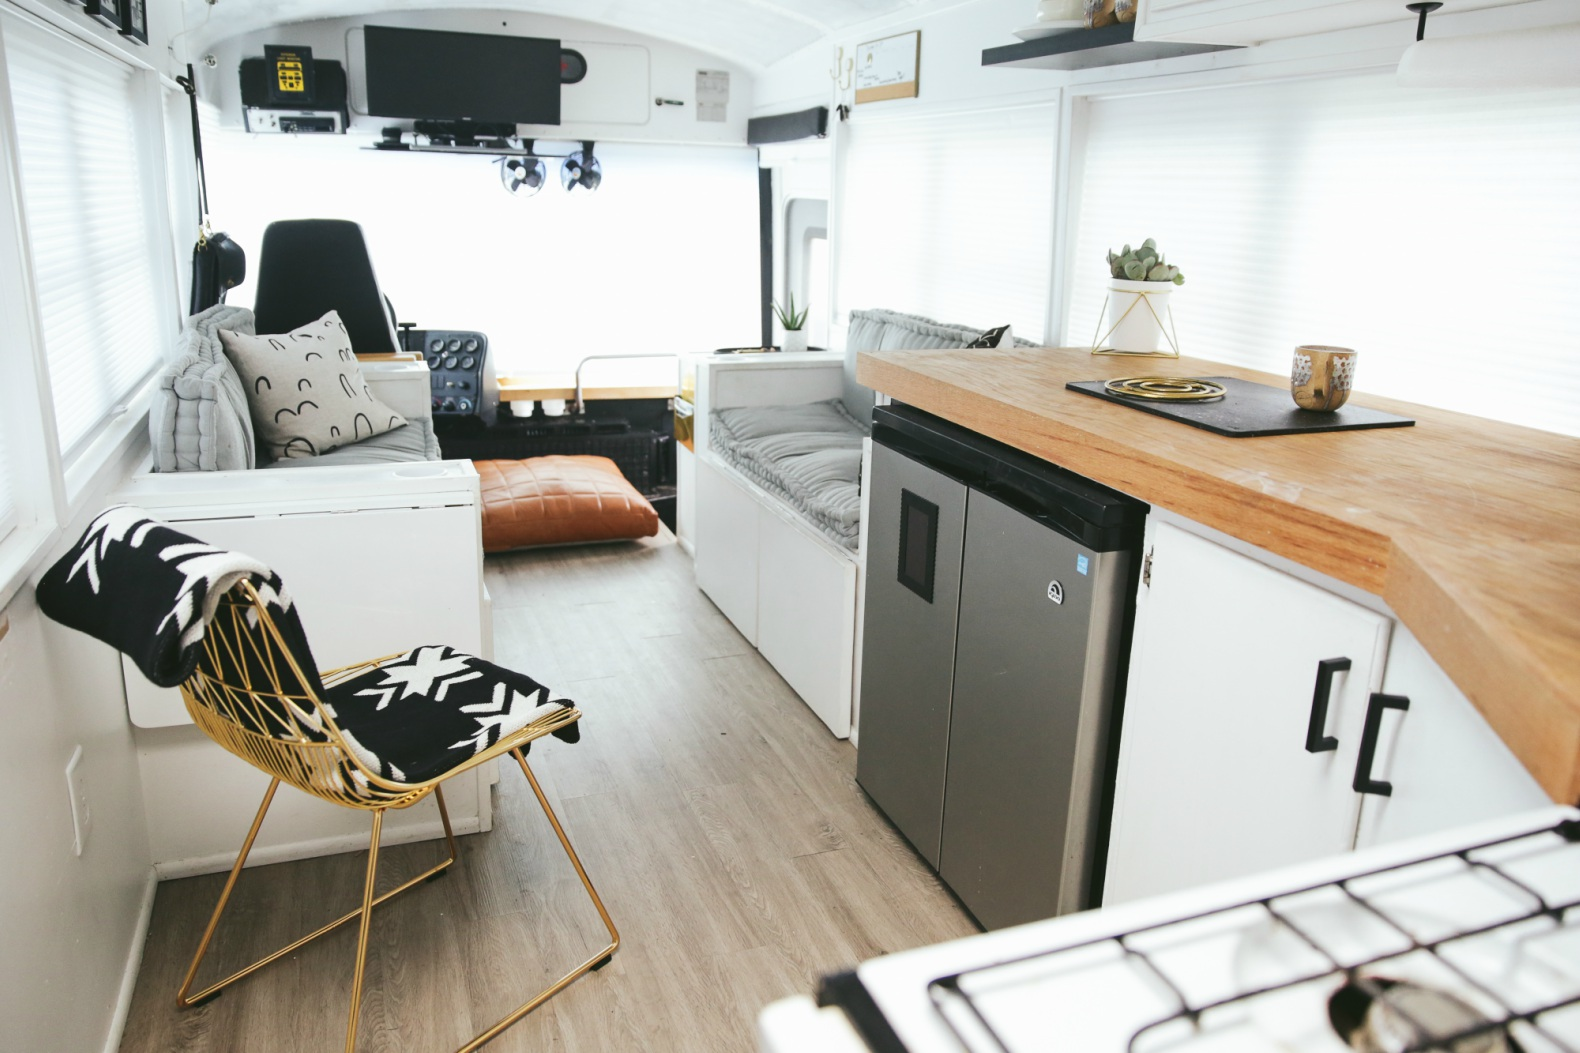 This amazing renovated school bus is a bright, airy home for